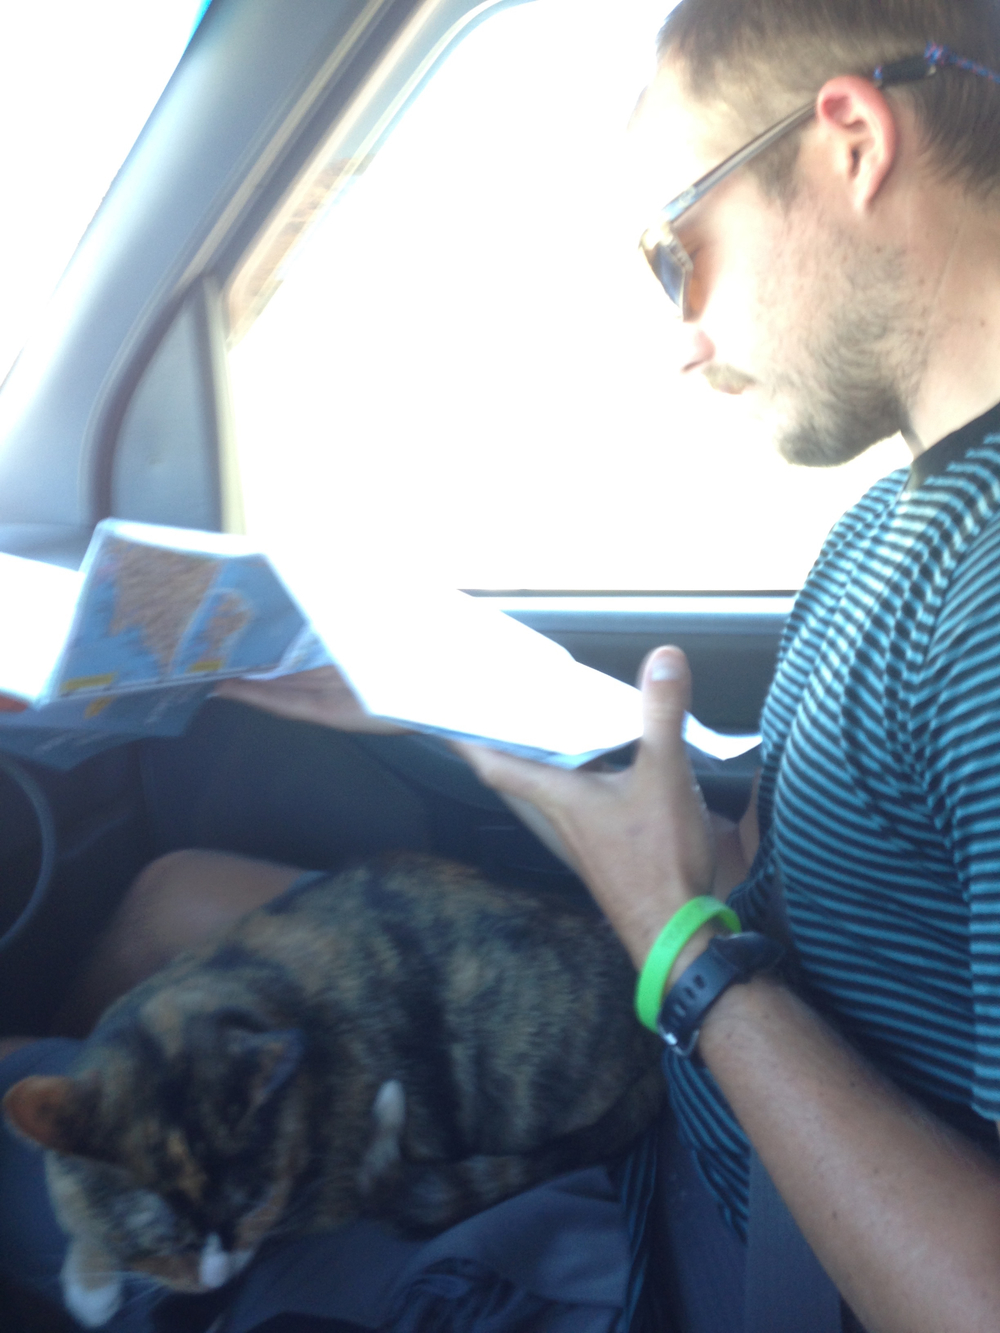 Loulou slacking on the job as navigator.